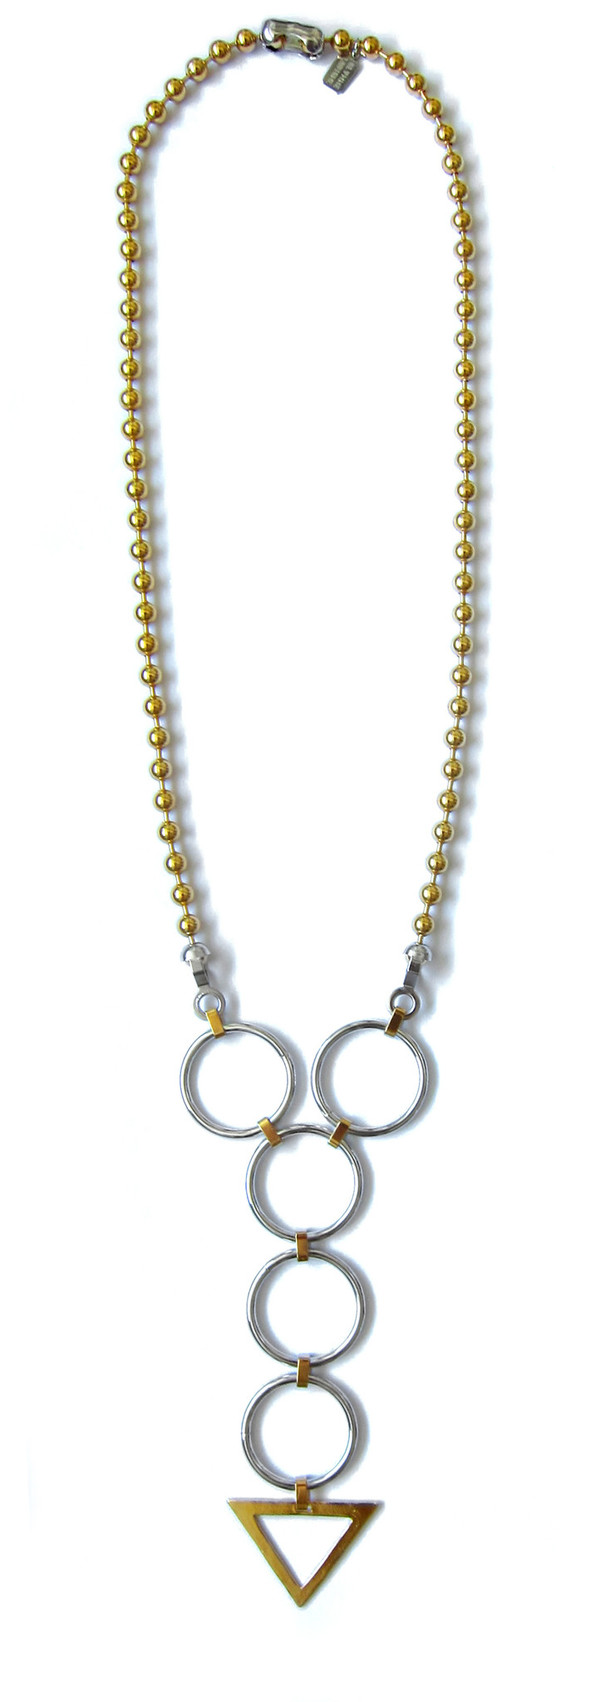 Men's Industriallace Necklace